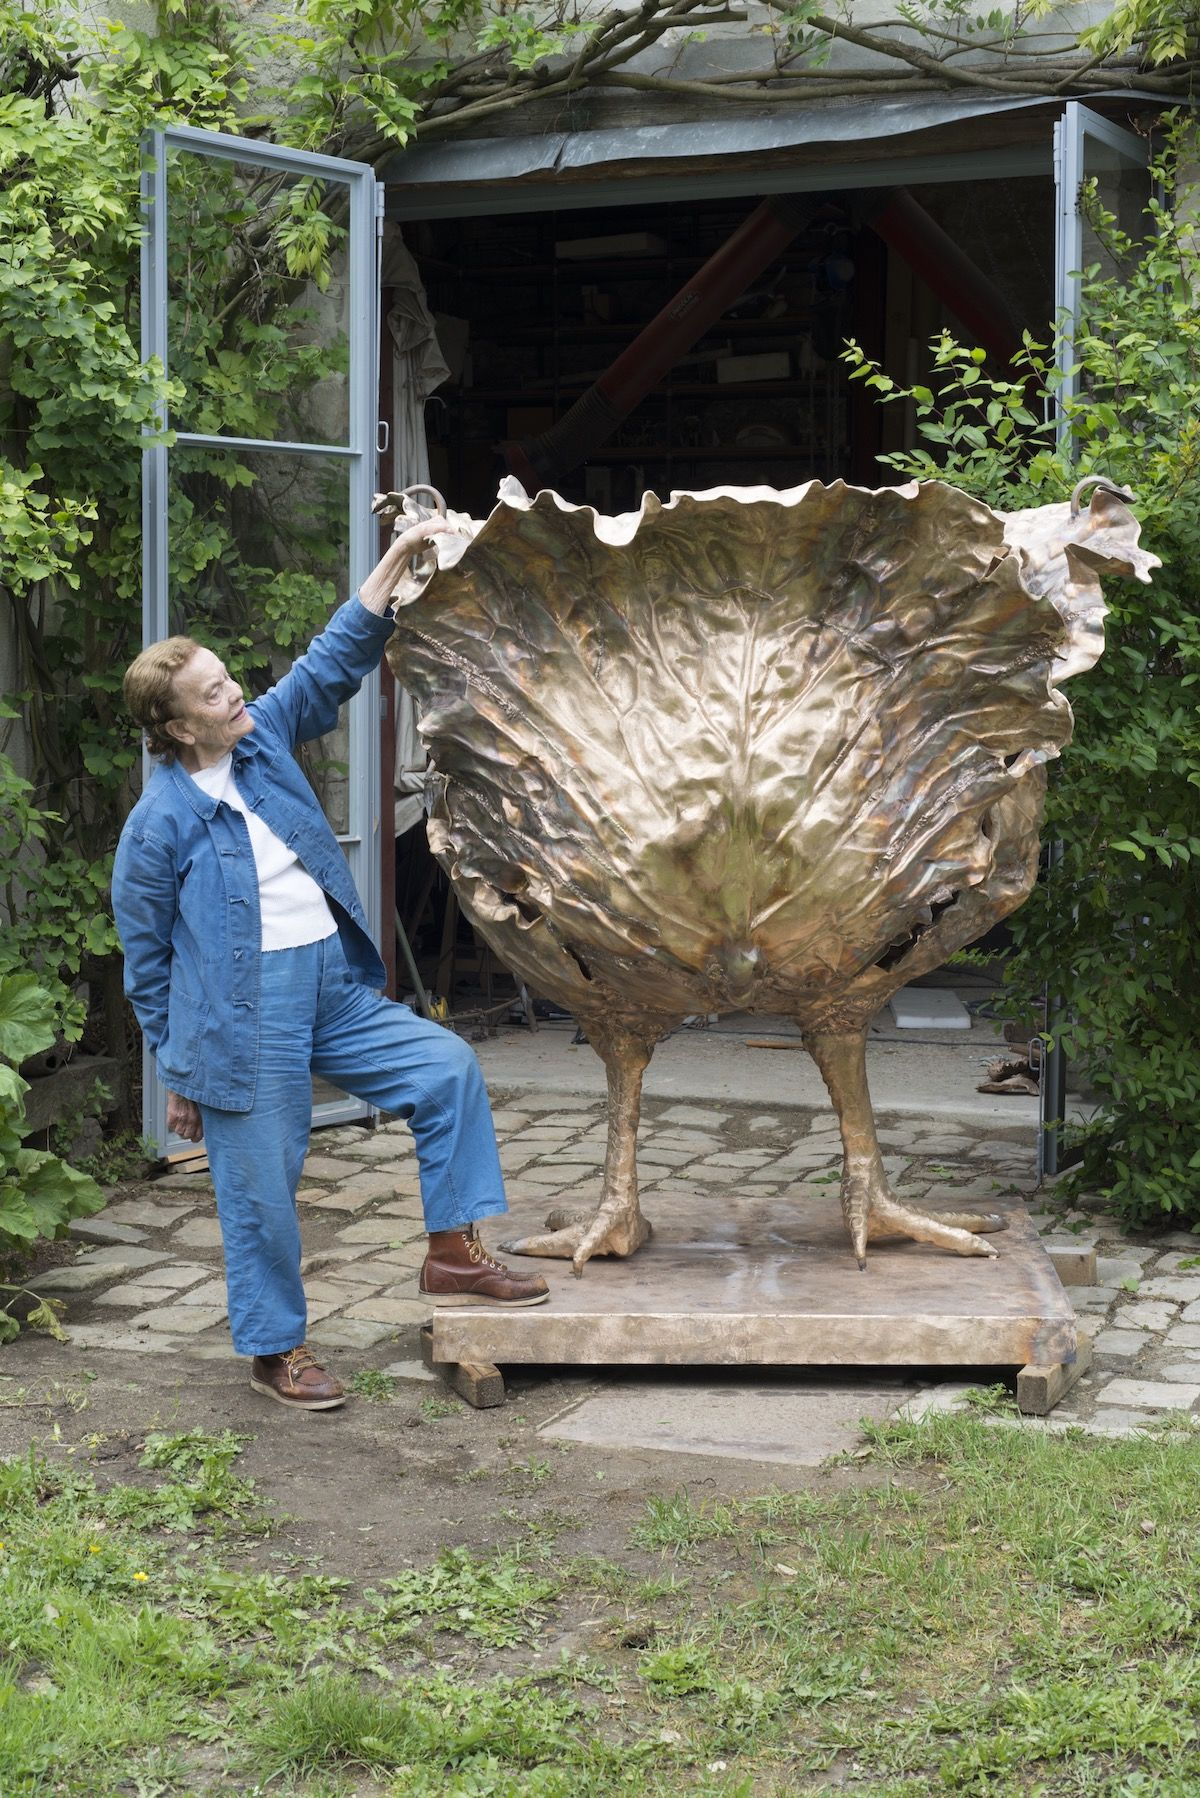 CELEBRATING THE LIFE AND WORK OF CALUDE LALANNE | French artist and sculptor, and one half of les Lalanne, Claude Lalanne, dies at 93 | image via ARTSY, photo 'Claude Lalanne with the Choupatte Géante' in 2016. Photo by Capucine de Chabaneix. © The Artist. Courtesy of Ben Brown Fine Arts.      LINK HERE >>>